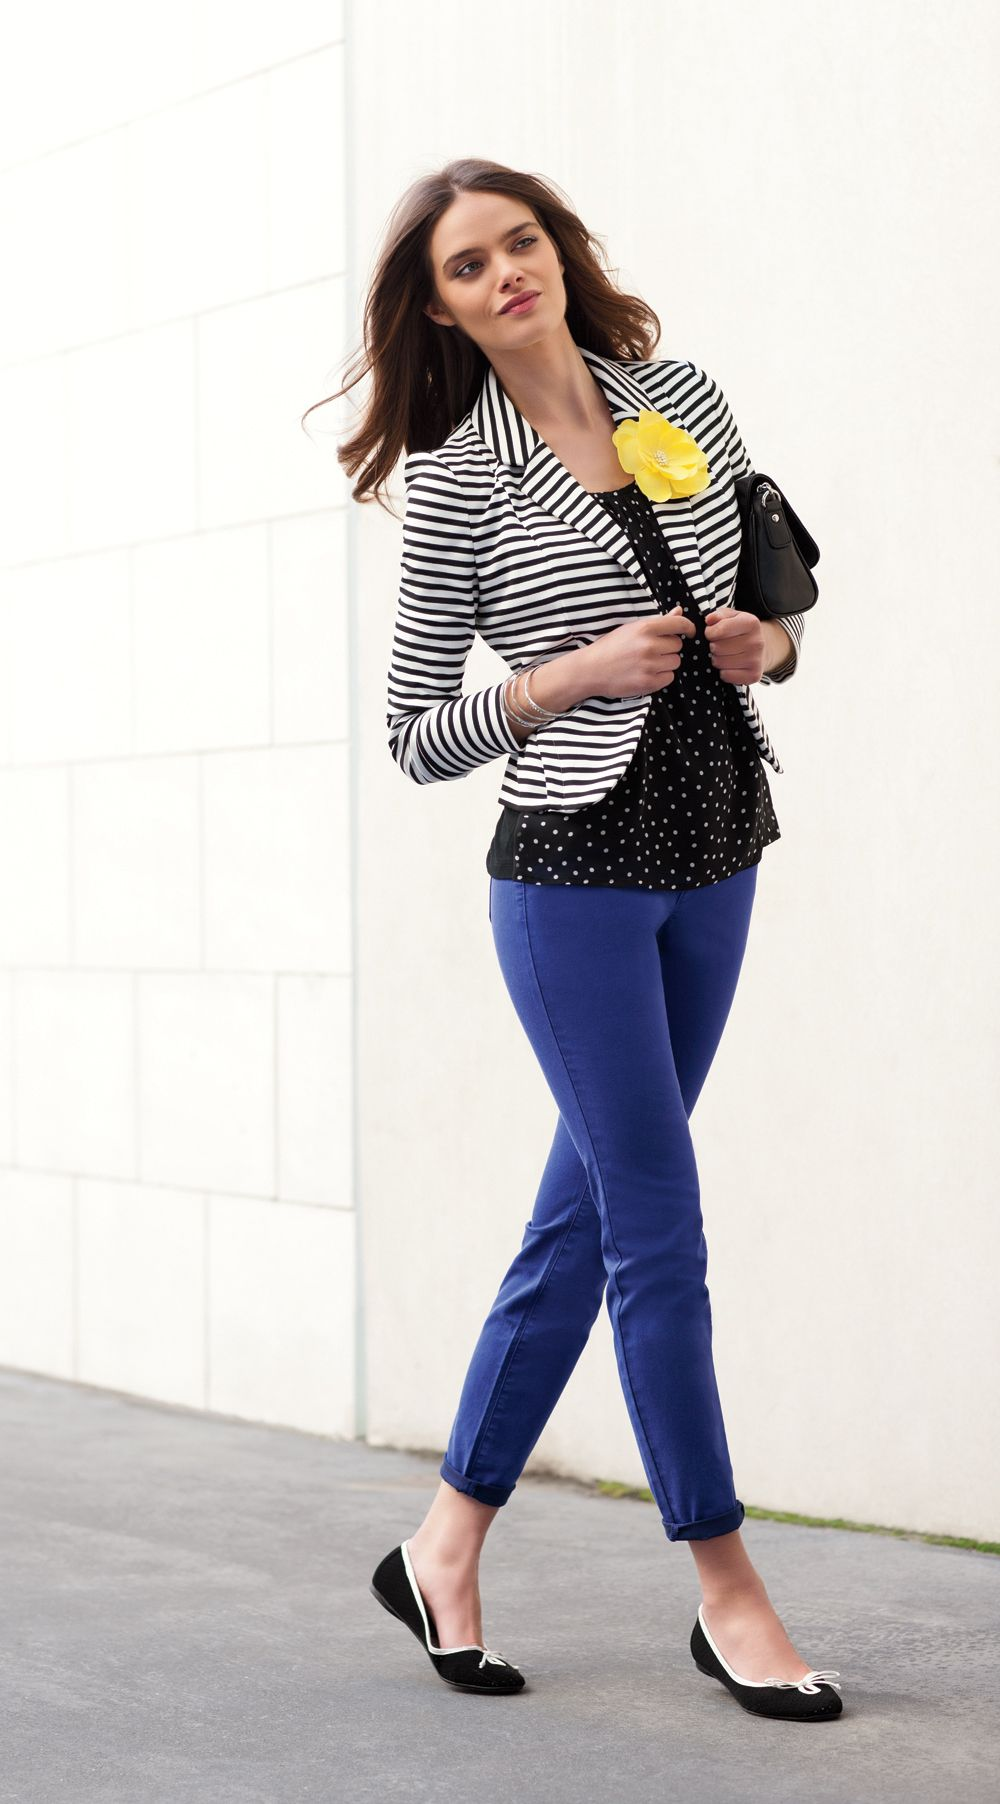 ab7476438e Layers: color jeans or skirt with black & white striped blazer + subtle  polka dots (Love the bright color block flower brooch/ pin)